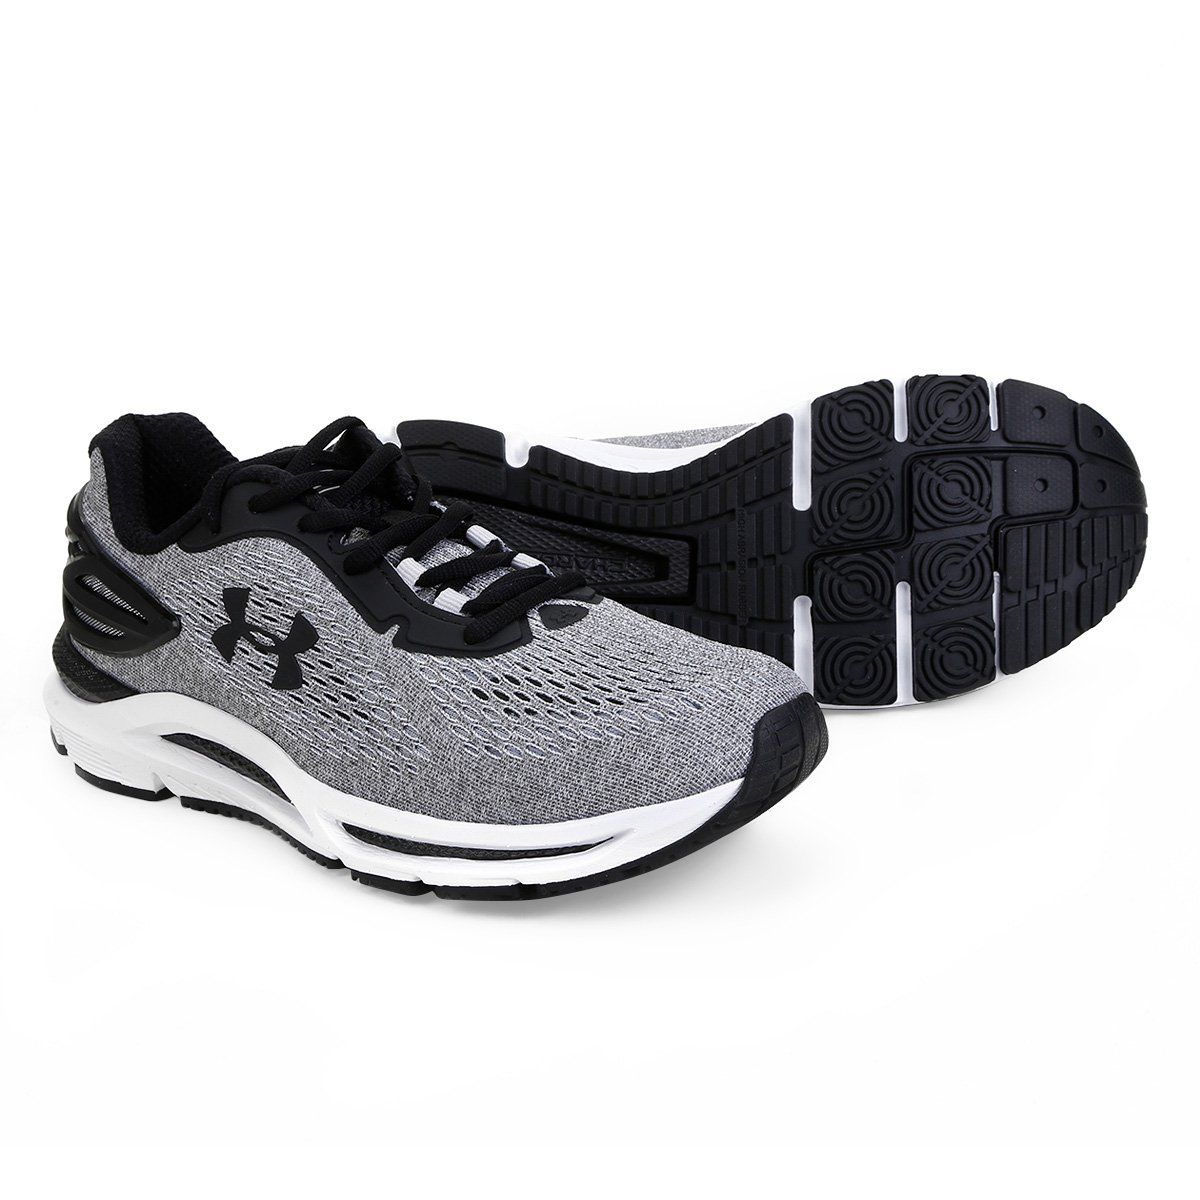 TÊNIS UNDER ARMOUR CHARGED SPREAD MASCULINO - CINZA